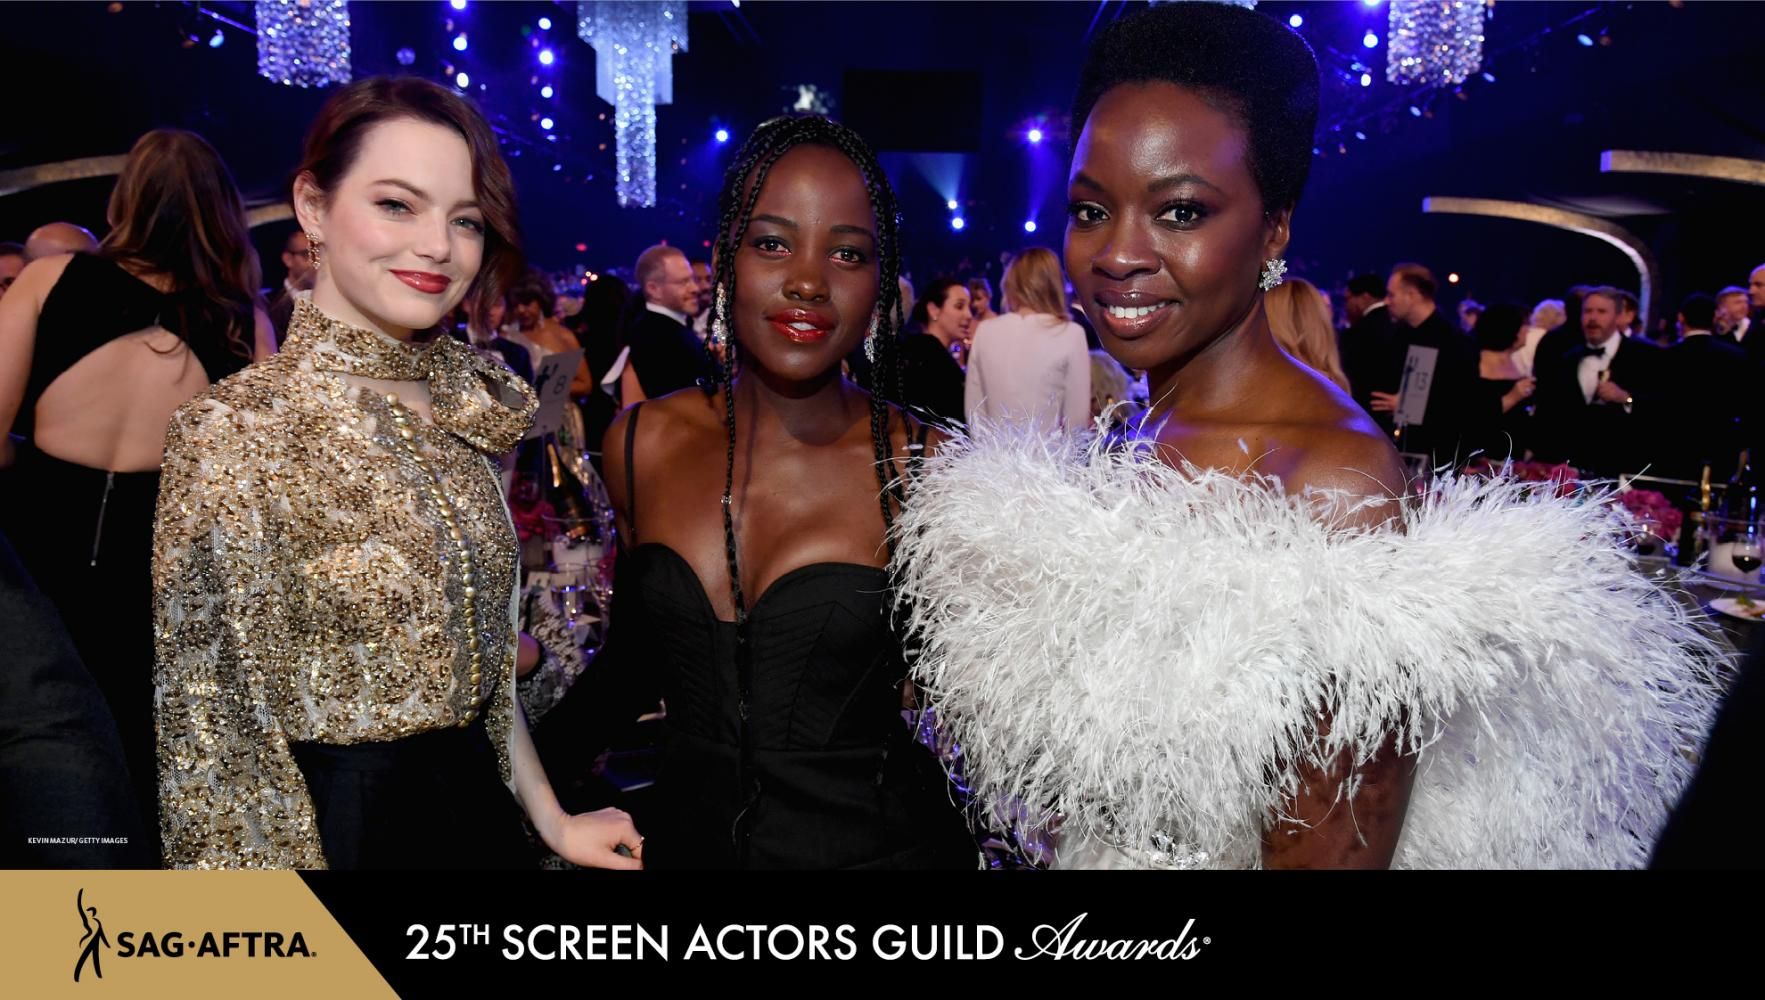 Stone in a gold beaded top, Nyong'o in a black spaghetti strap dress and Gurira in a white dress with feathers protruding around her chest